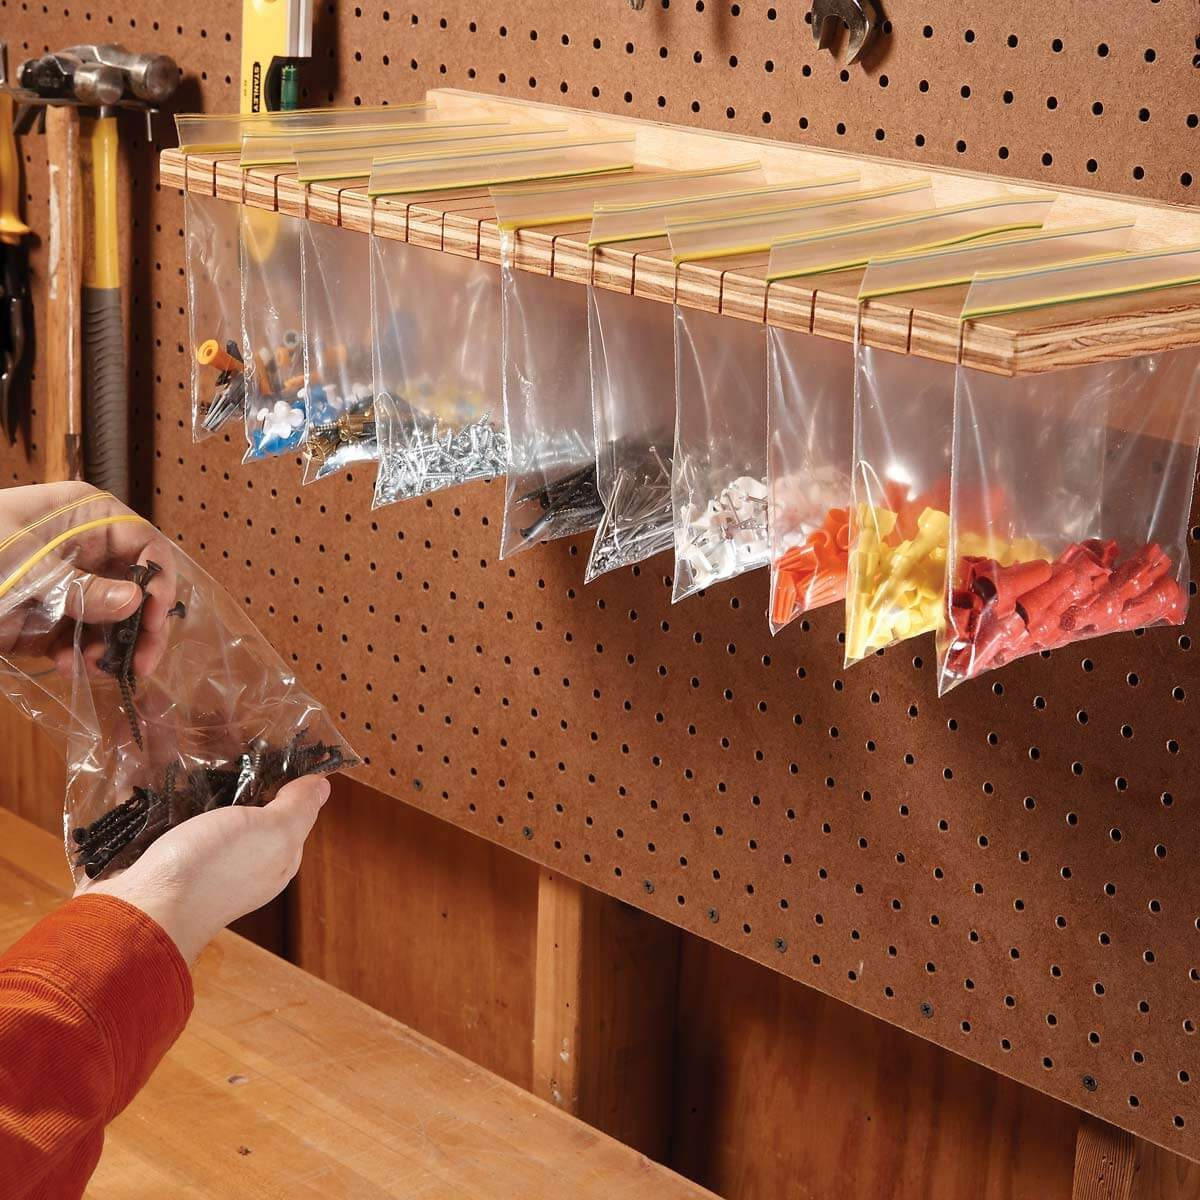 Assemble a Sandwich Bag Parts Organizer